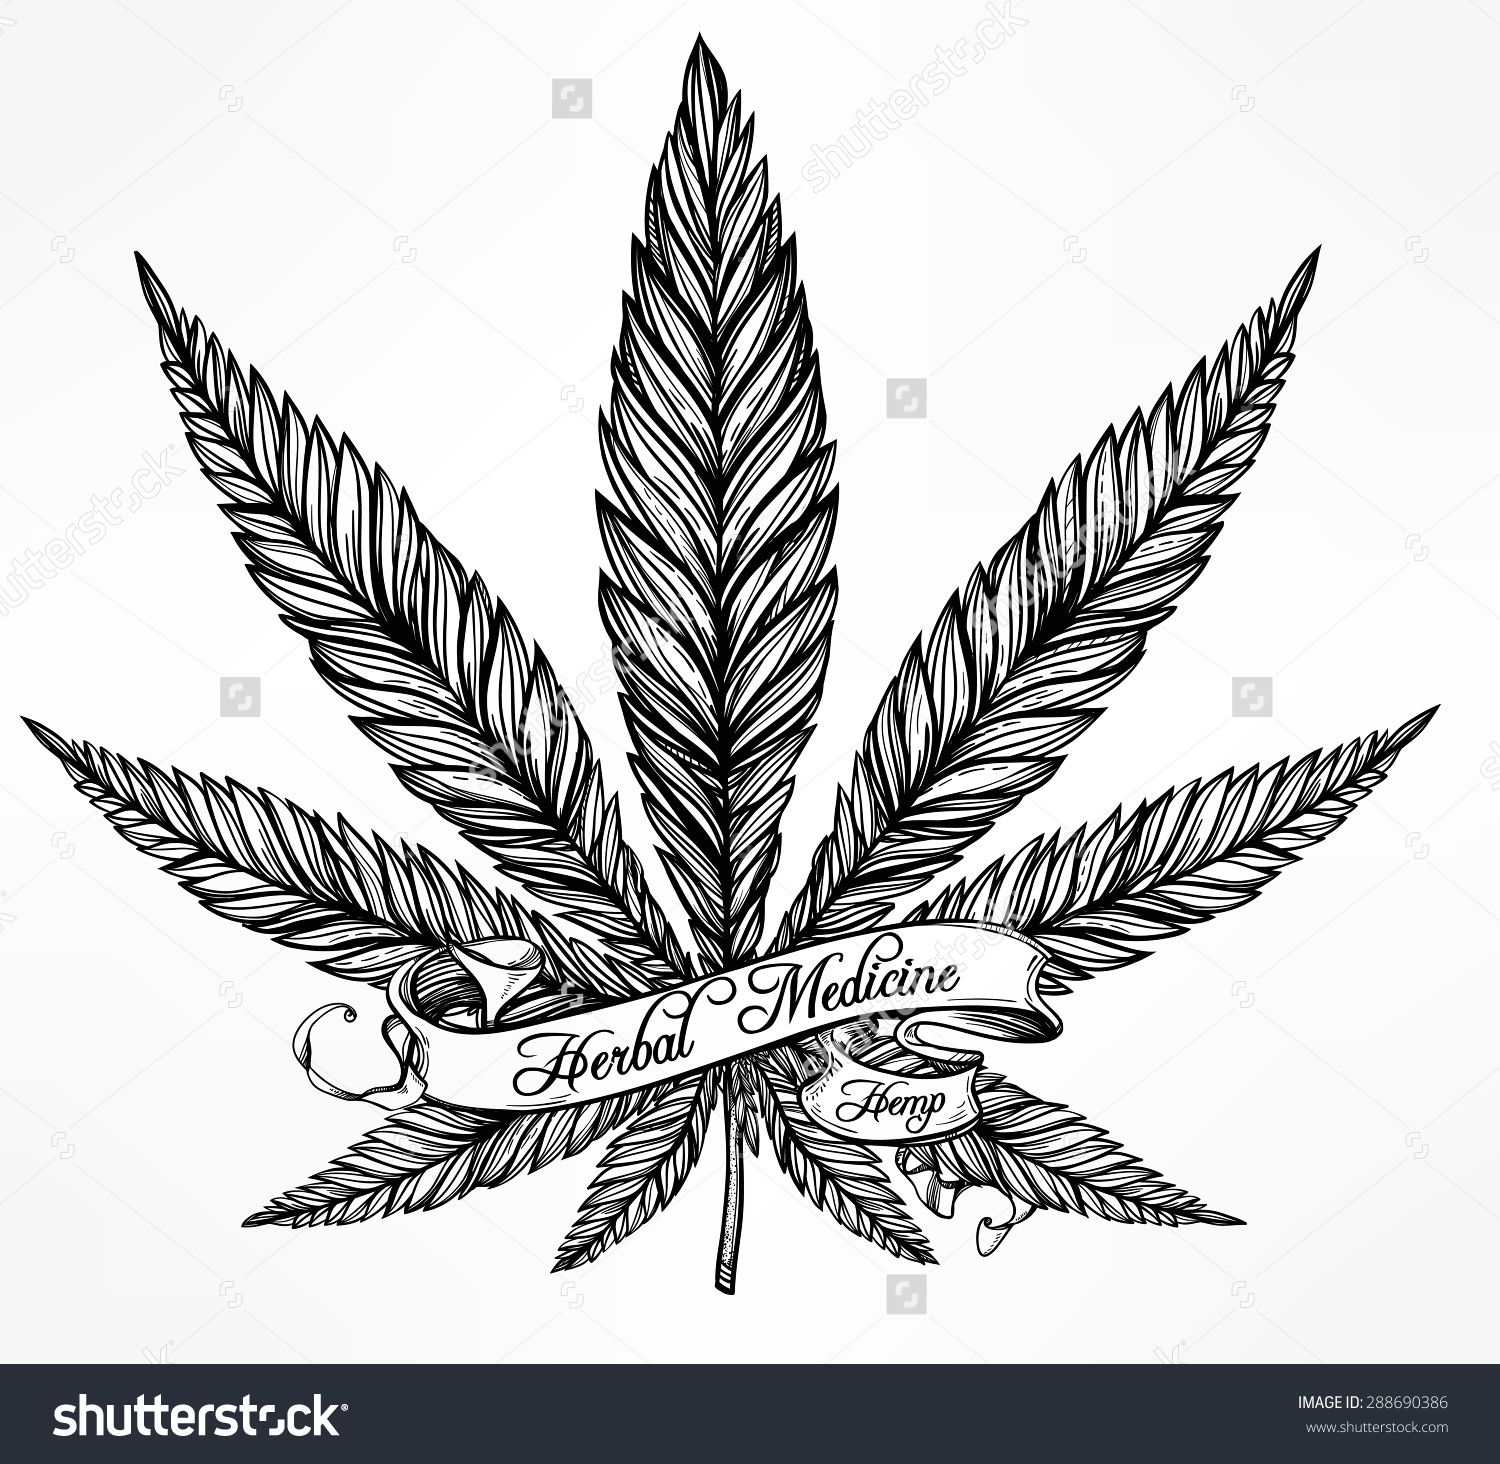 Stock vector hemp cannabis leaf in vintage linear style marijuana hemp cannabis leaf in vintage linear style buy this stock vector on shutterstock find other images biocorpaavc